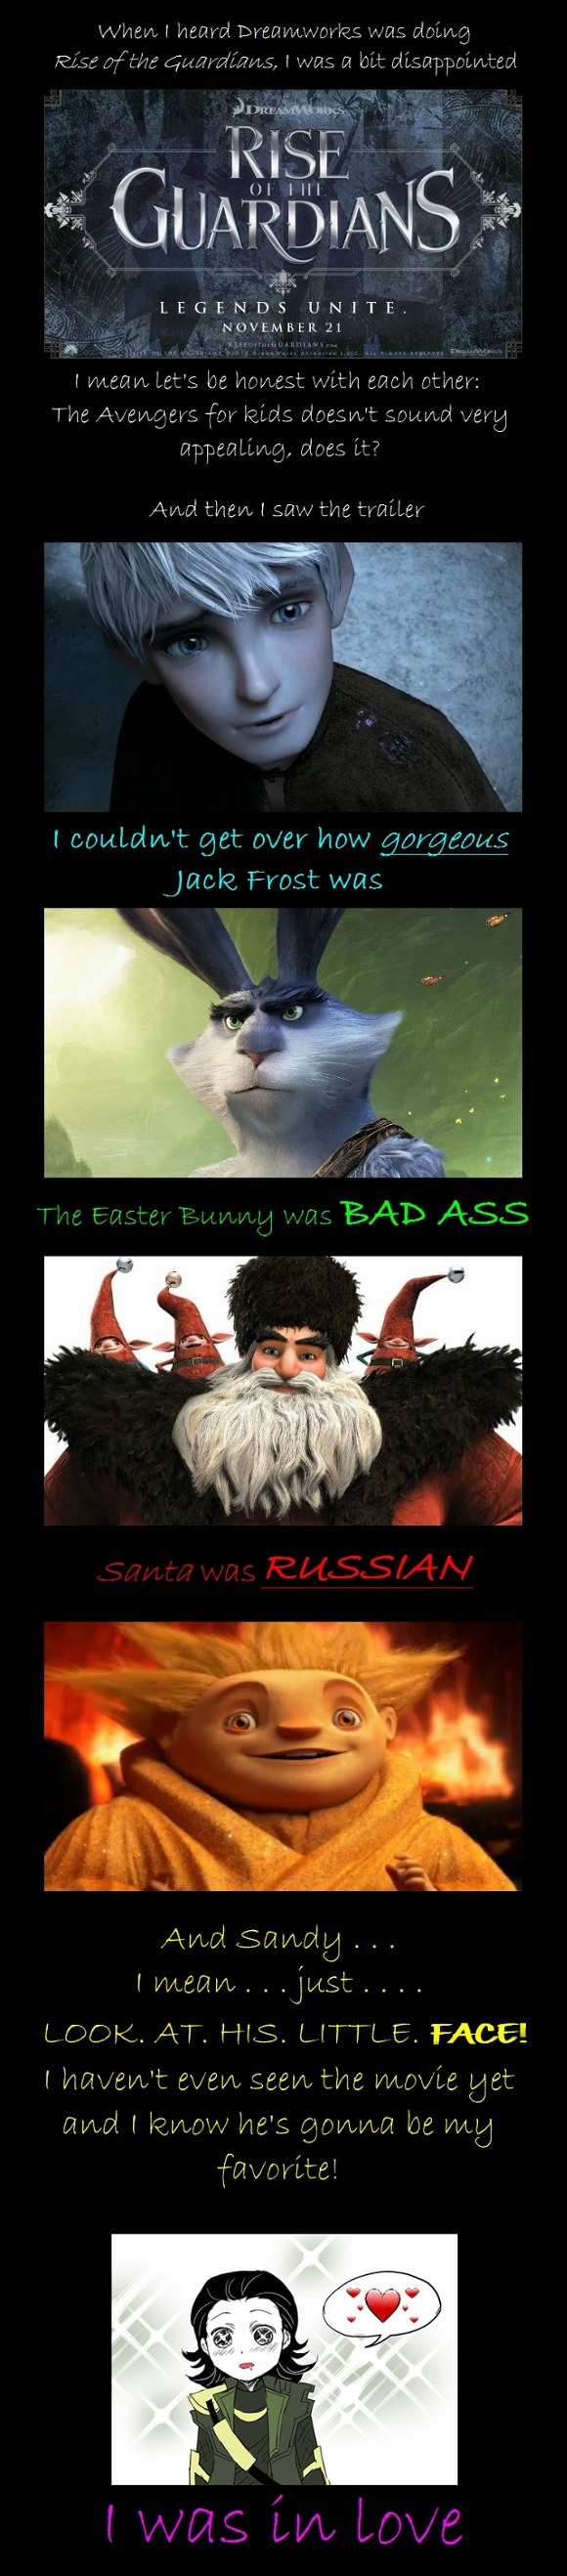 Rise of the Guardians by BFTLandMWandSEK